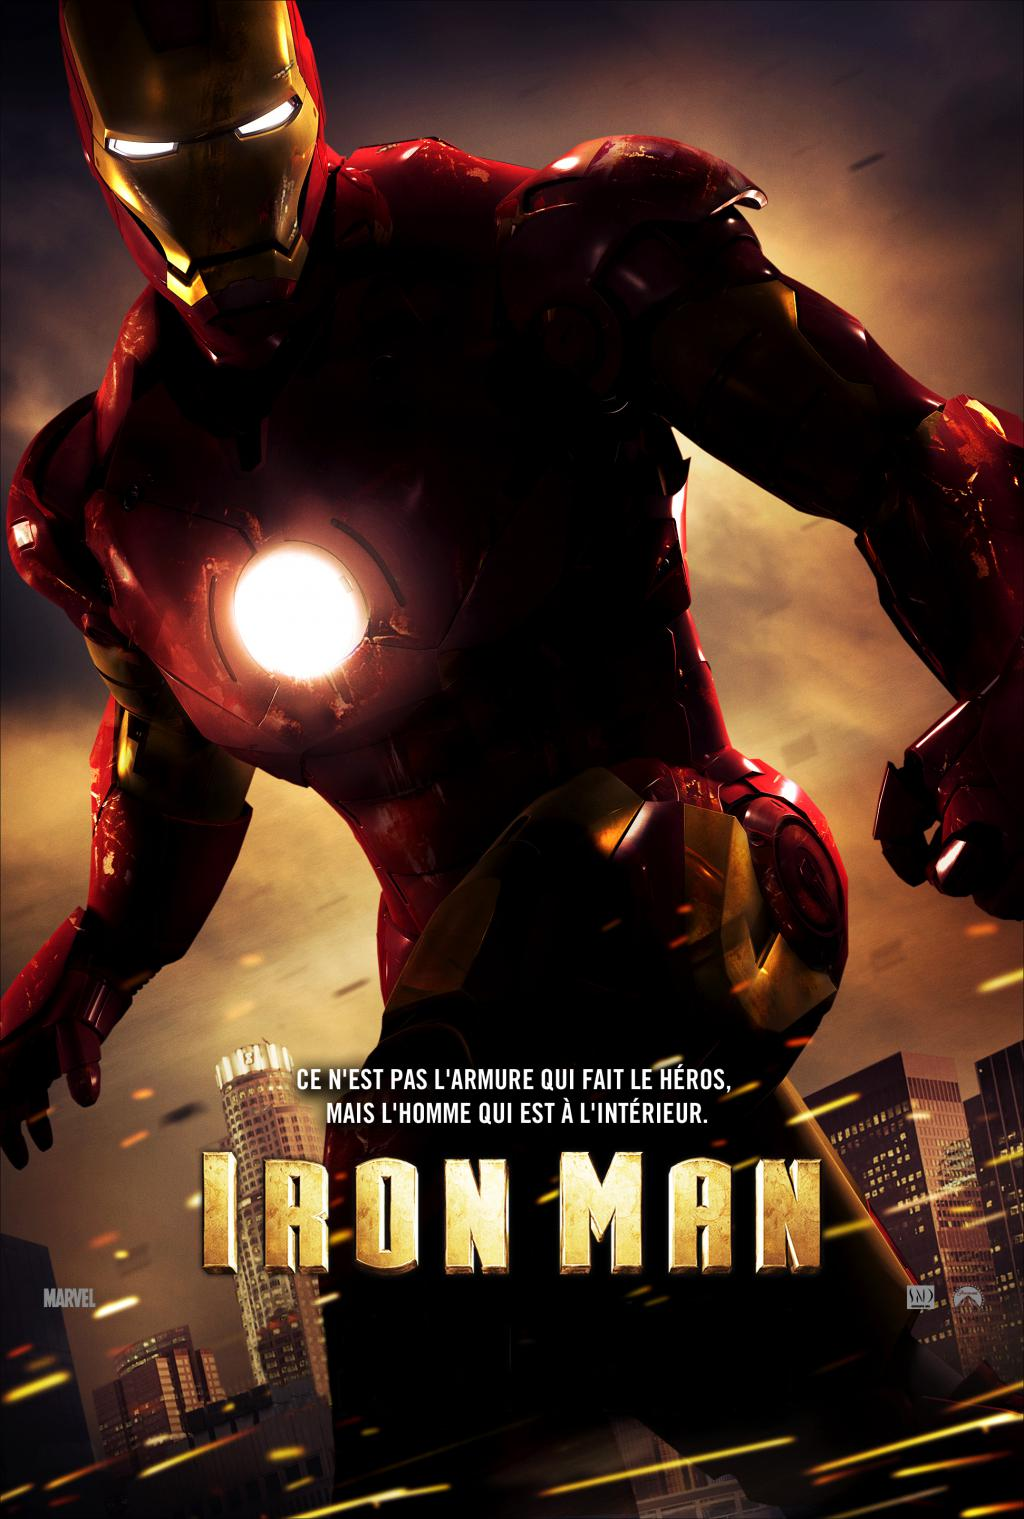 Wallpaper Iron Man Affiche du film Iron Man